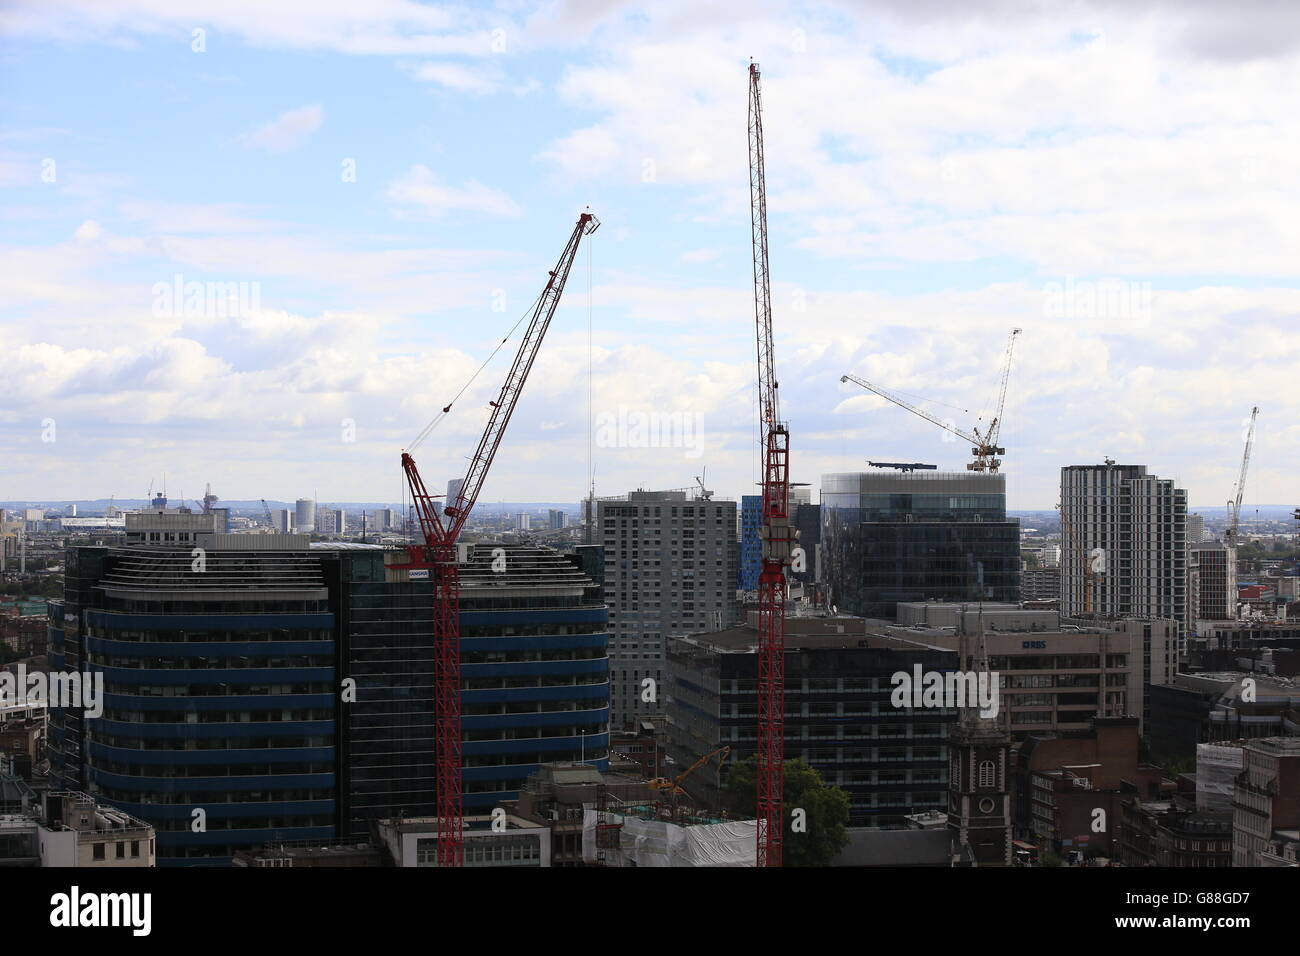 London city stock - Stock Image